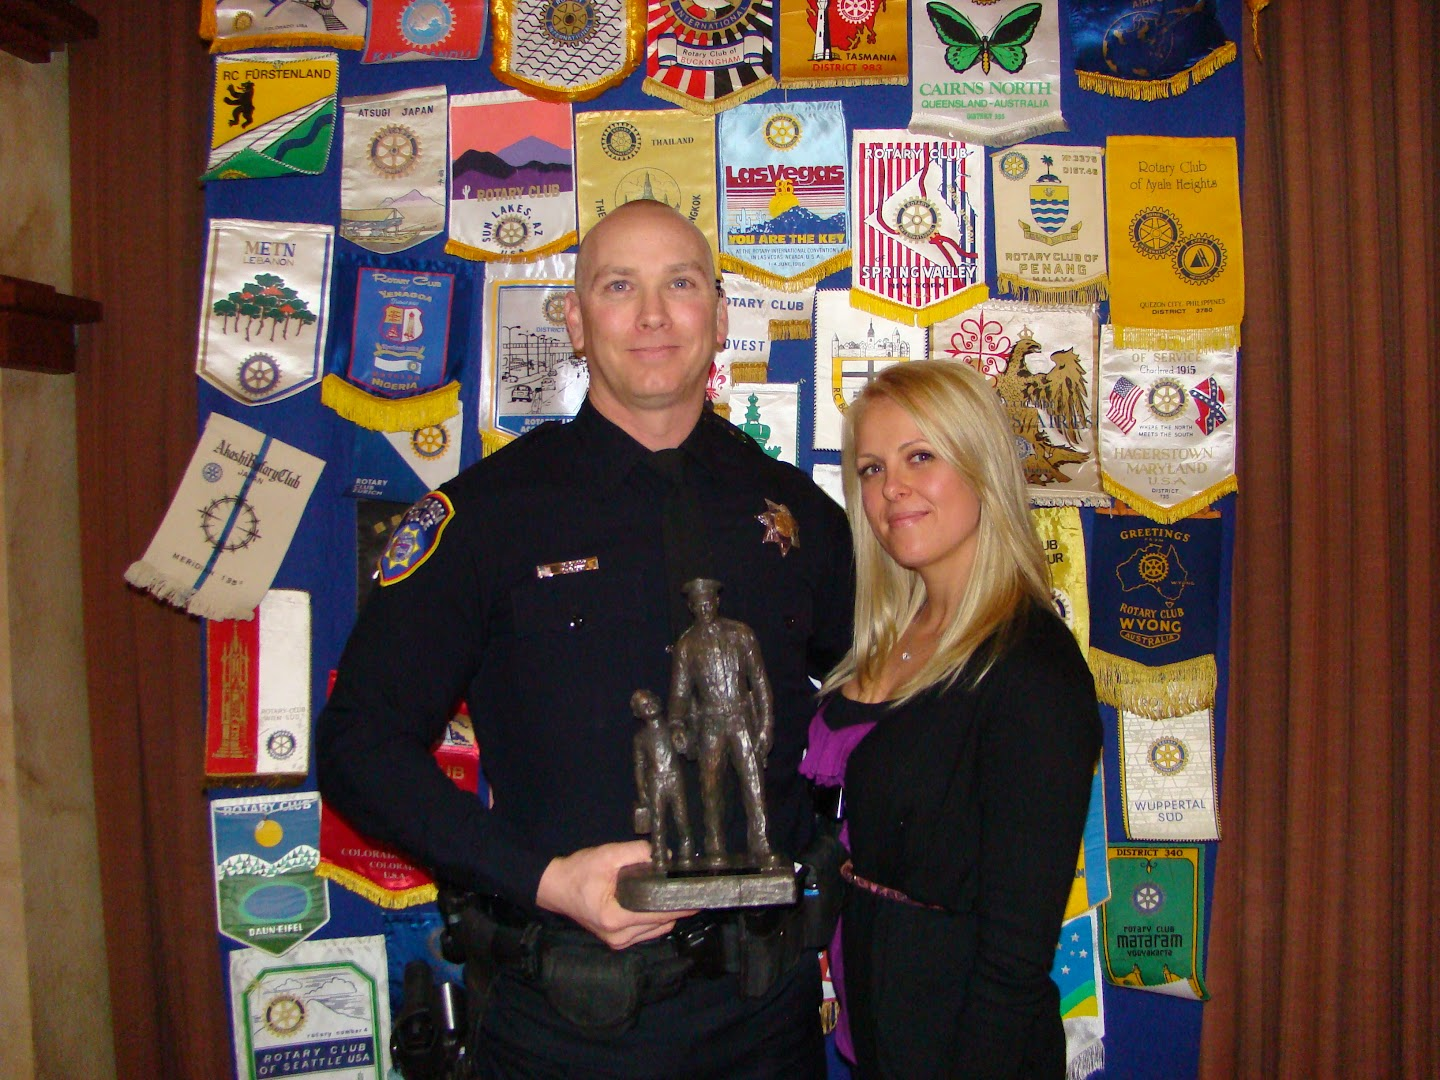 Law Enforcement Officer of the Year 2012 Michael C. Clark with his proud wife